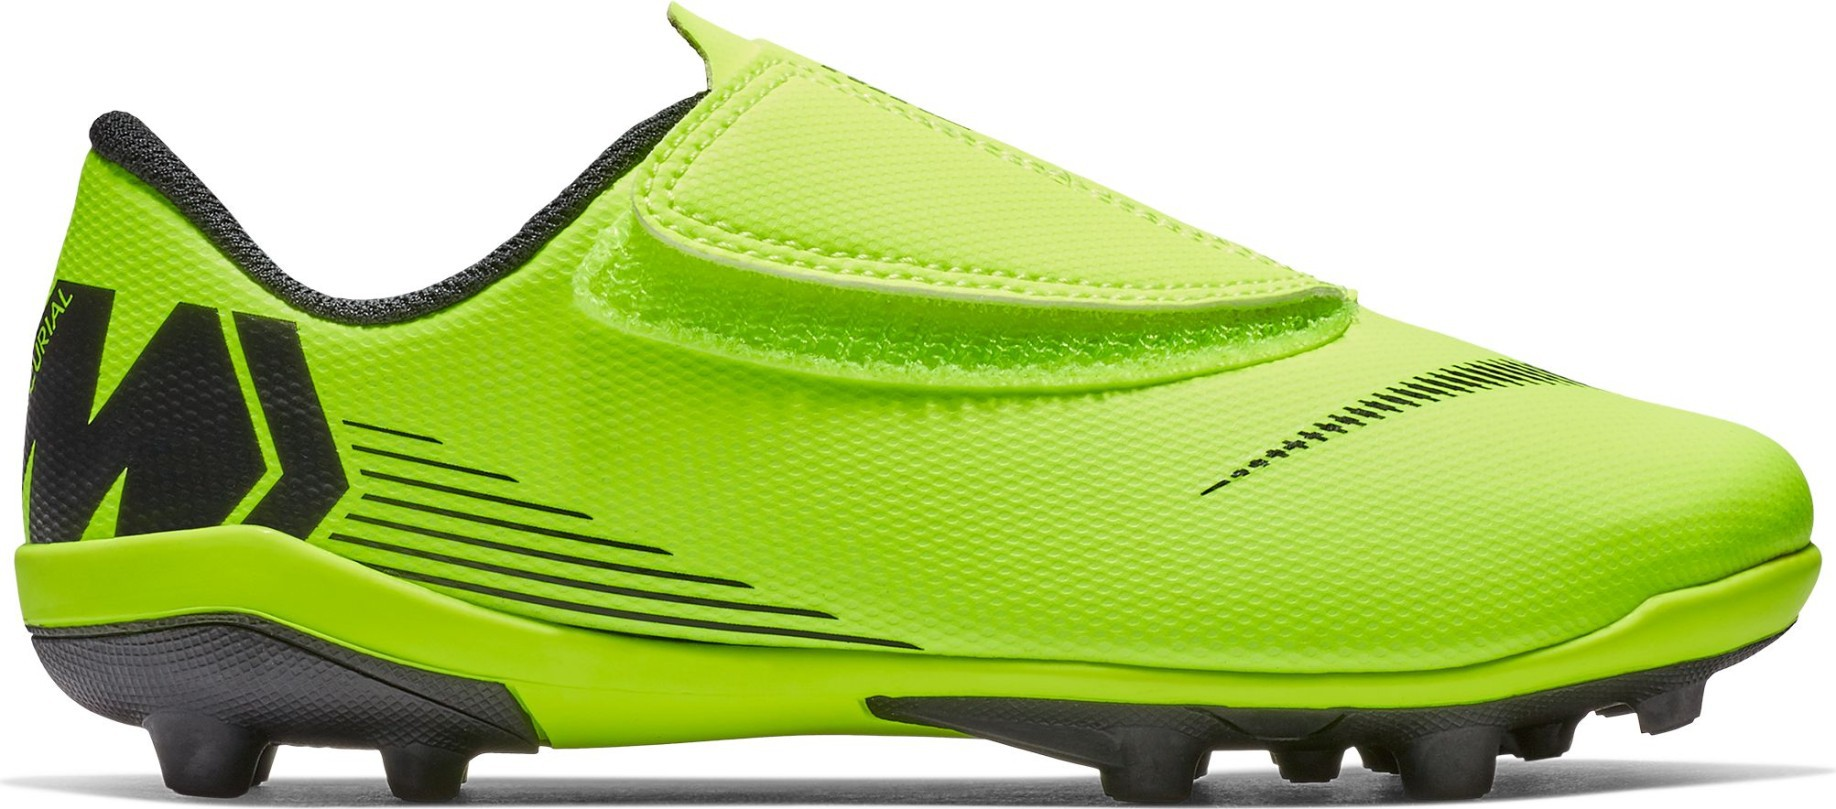 f0ad61c2c66 Football boots Child Nike Mercurial Vapor XII Club MG Always Forward Pack  colore Yellow Black - Nike - SportIT.com